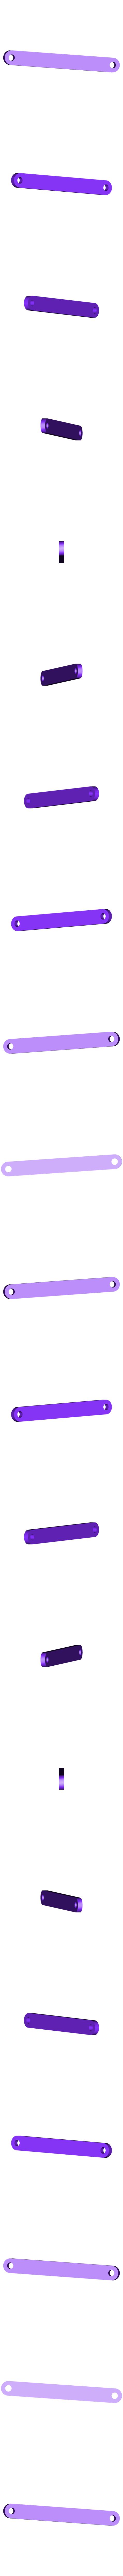 OpenRC_F1_250scaled_-_Steering_Push_Pin_v7-1.STL Télécharger fichier STL gratuit OpenRC F1 250% scaled • Design imprimable en 3D, colorFabb